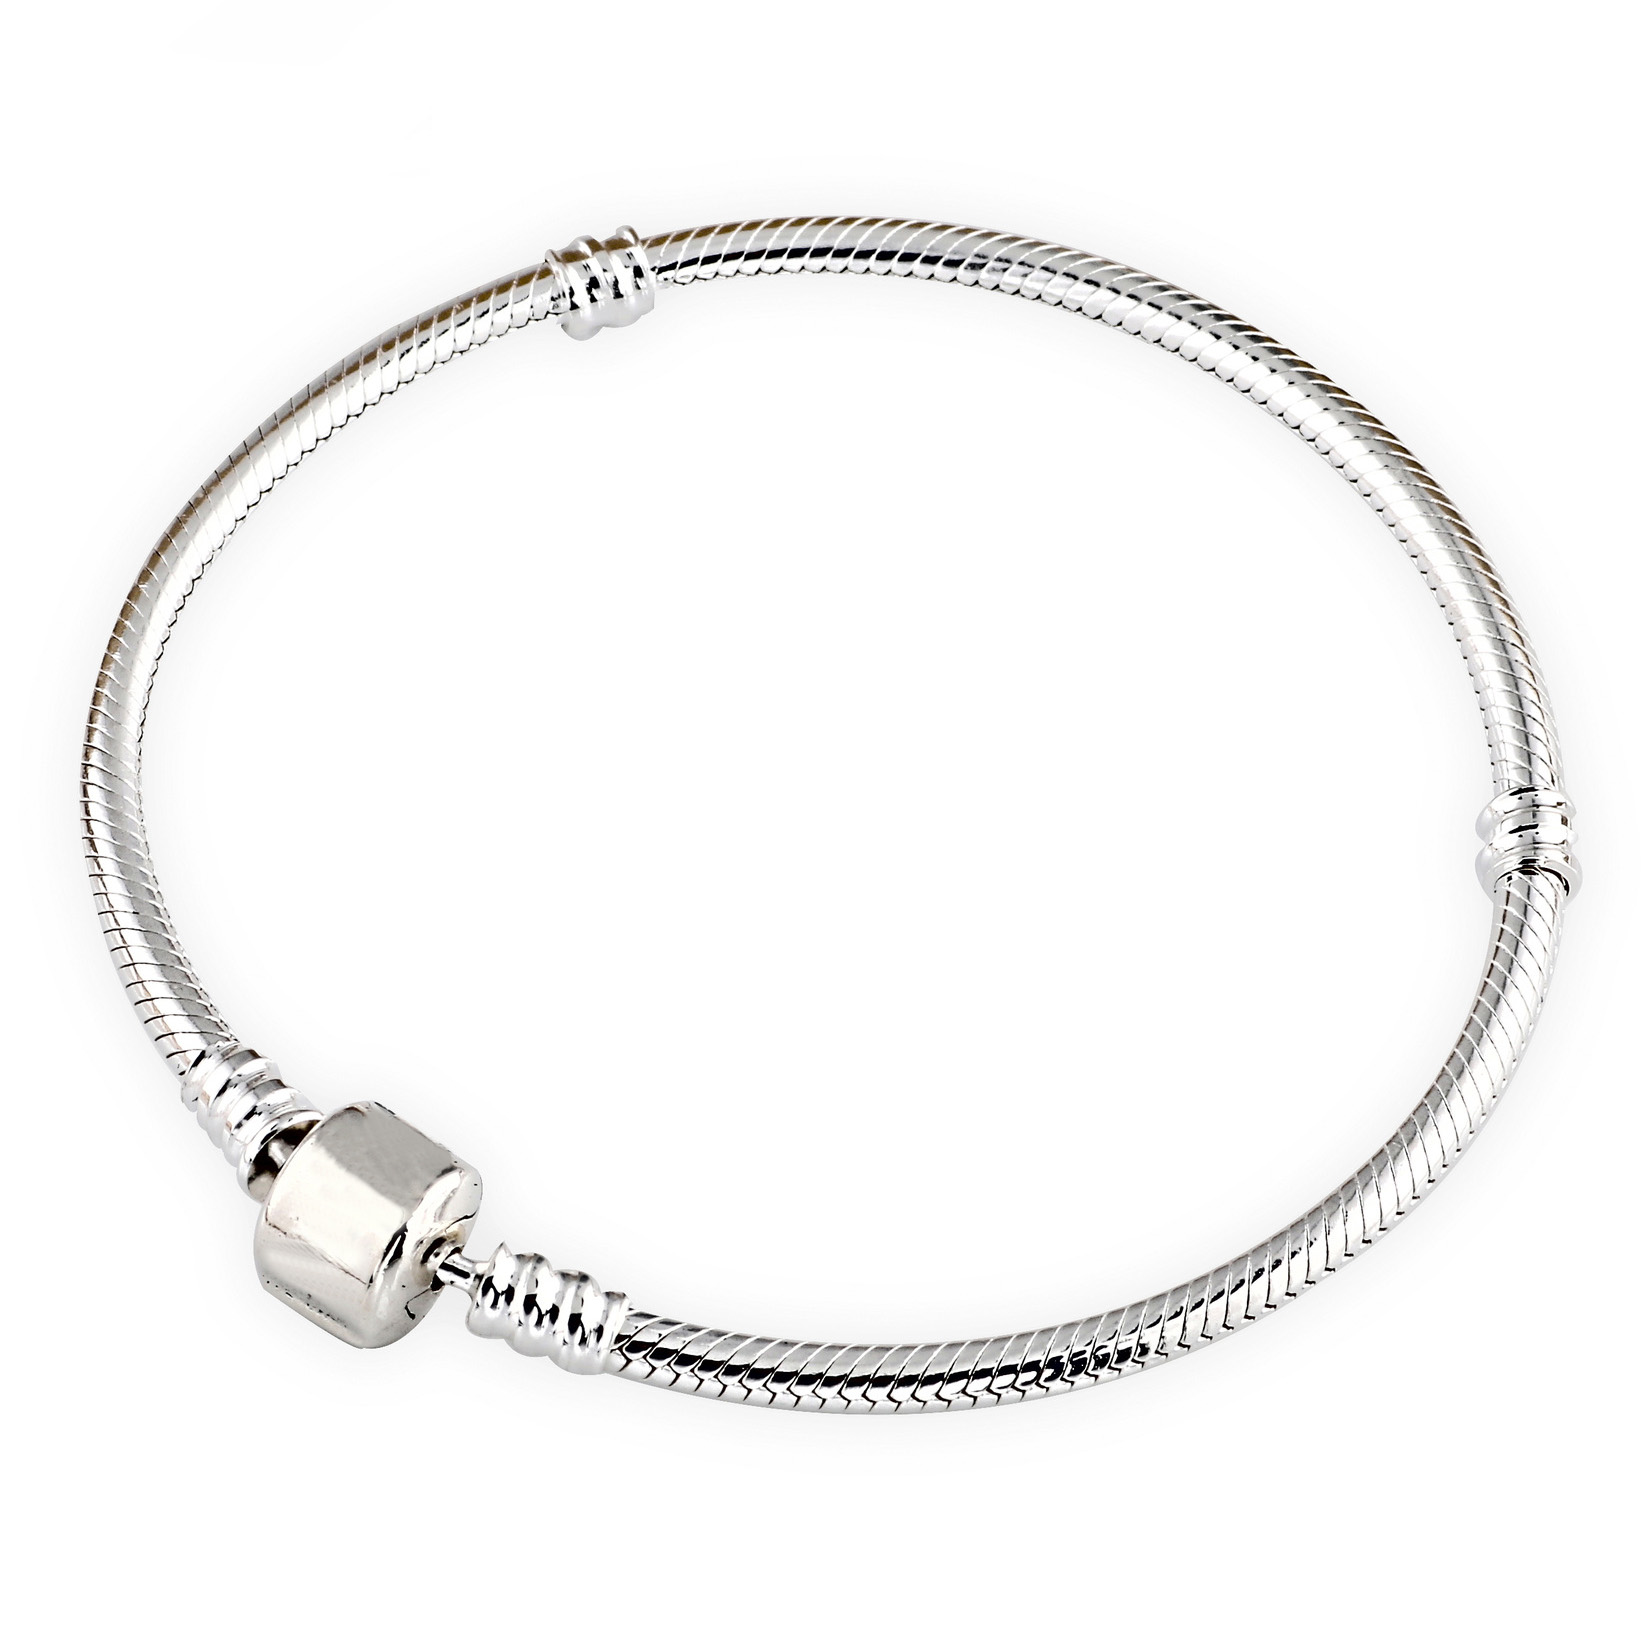 Authenetic 925 Sterling Silver Bracelet Snake chain Lobster Clasp Basic Bracelet Bangle Fit Women Bead Charm DIY Pandora JewelryAuthenetic 925 Sterling Silver Bracelet Snake chain Lobster Clasp Basic Bracelet Bangle Fit Women Bead Charm DIY Pandora Jewelry